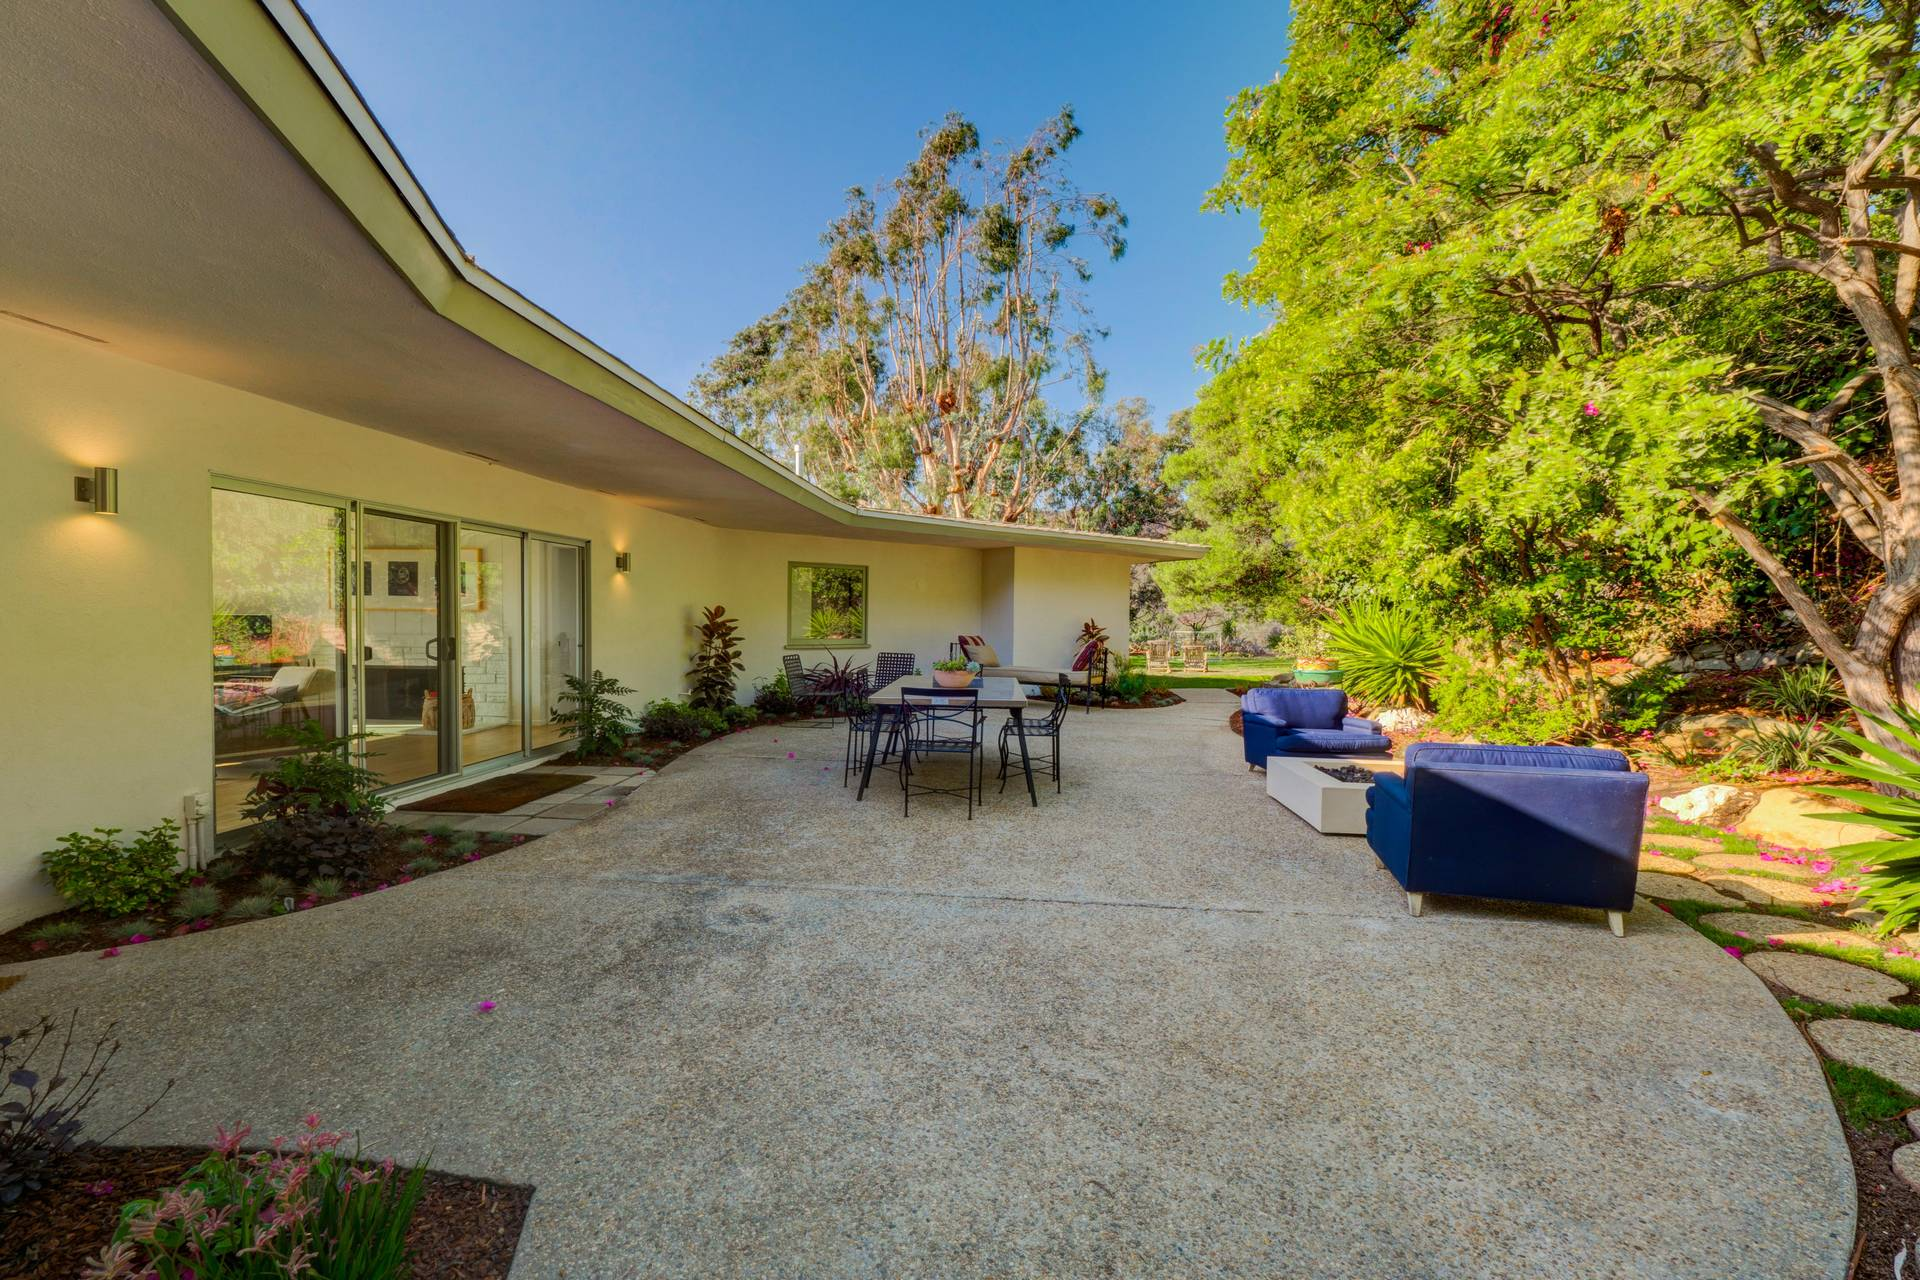 1290 Rimmer,Pacific Palisades,California 90272,3 Bedrooms Bedrooms,3 BathroomsBathrooms,Home,Rimmer,1060